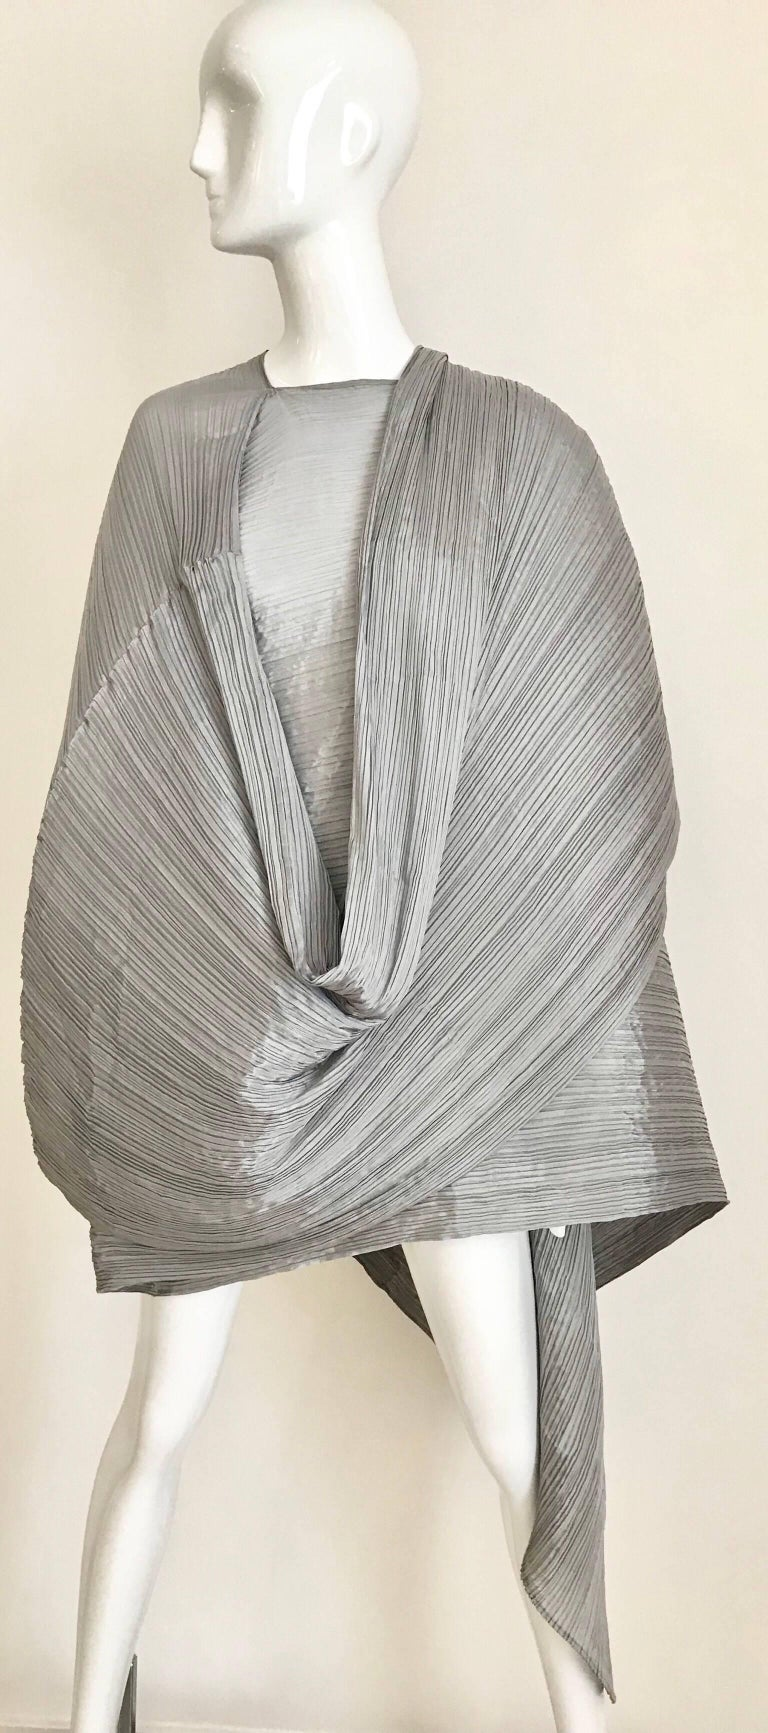 Issey Miyake Pleats Please Silver Grey Caftan Dress In Excellent Condition For Sale In Beverly Hills, CA